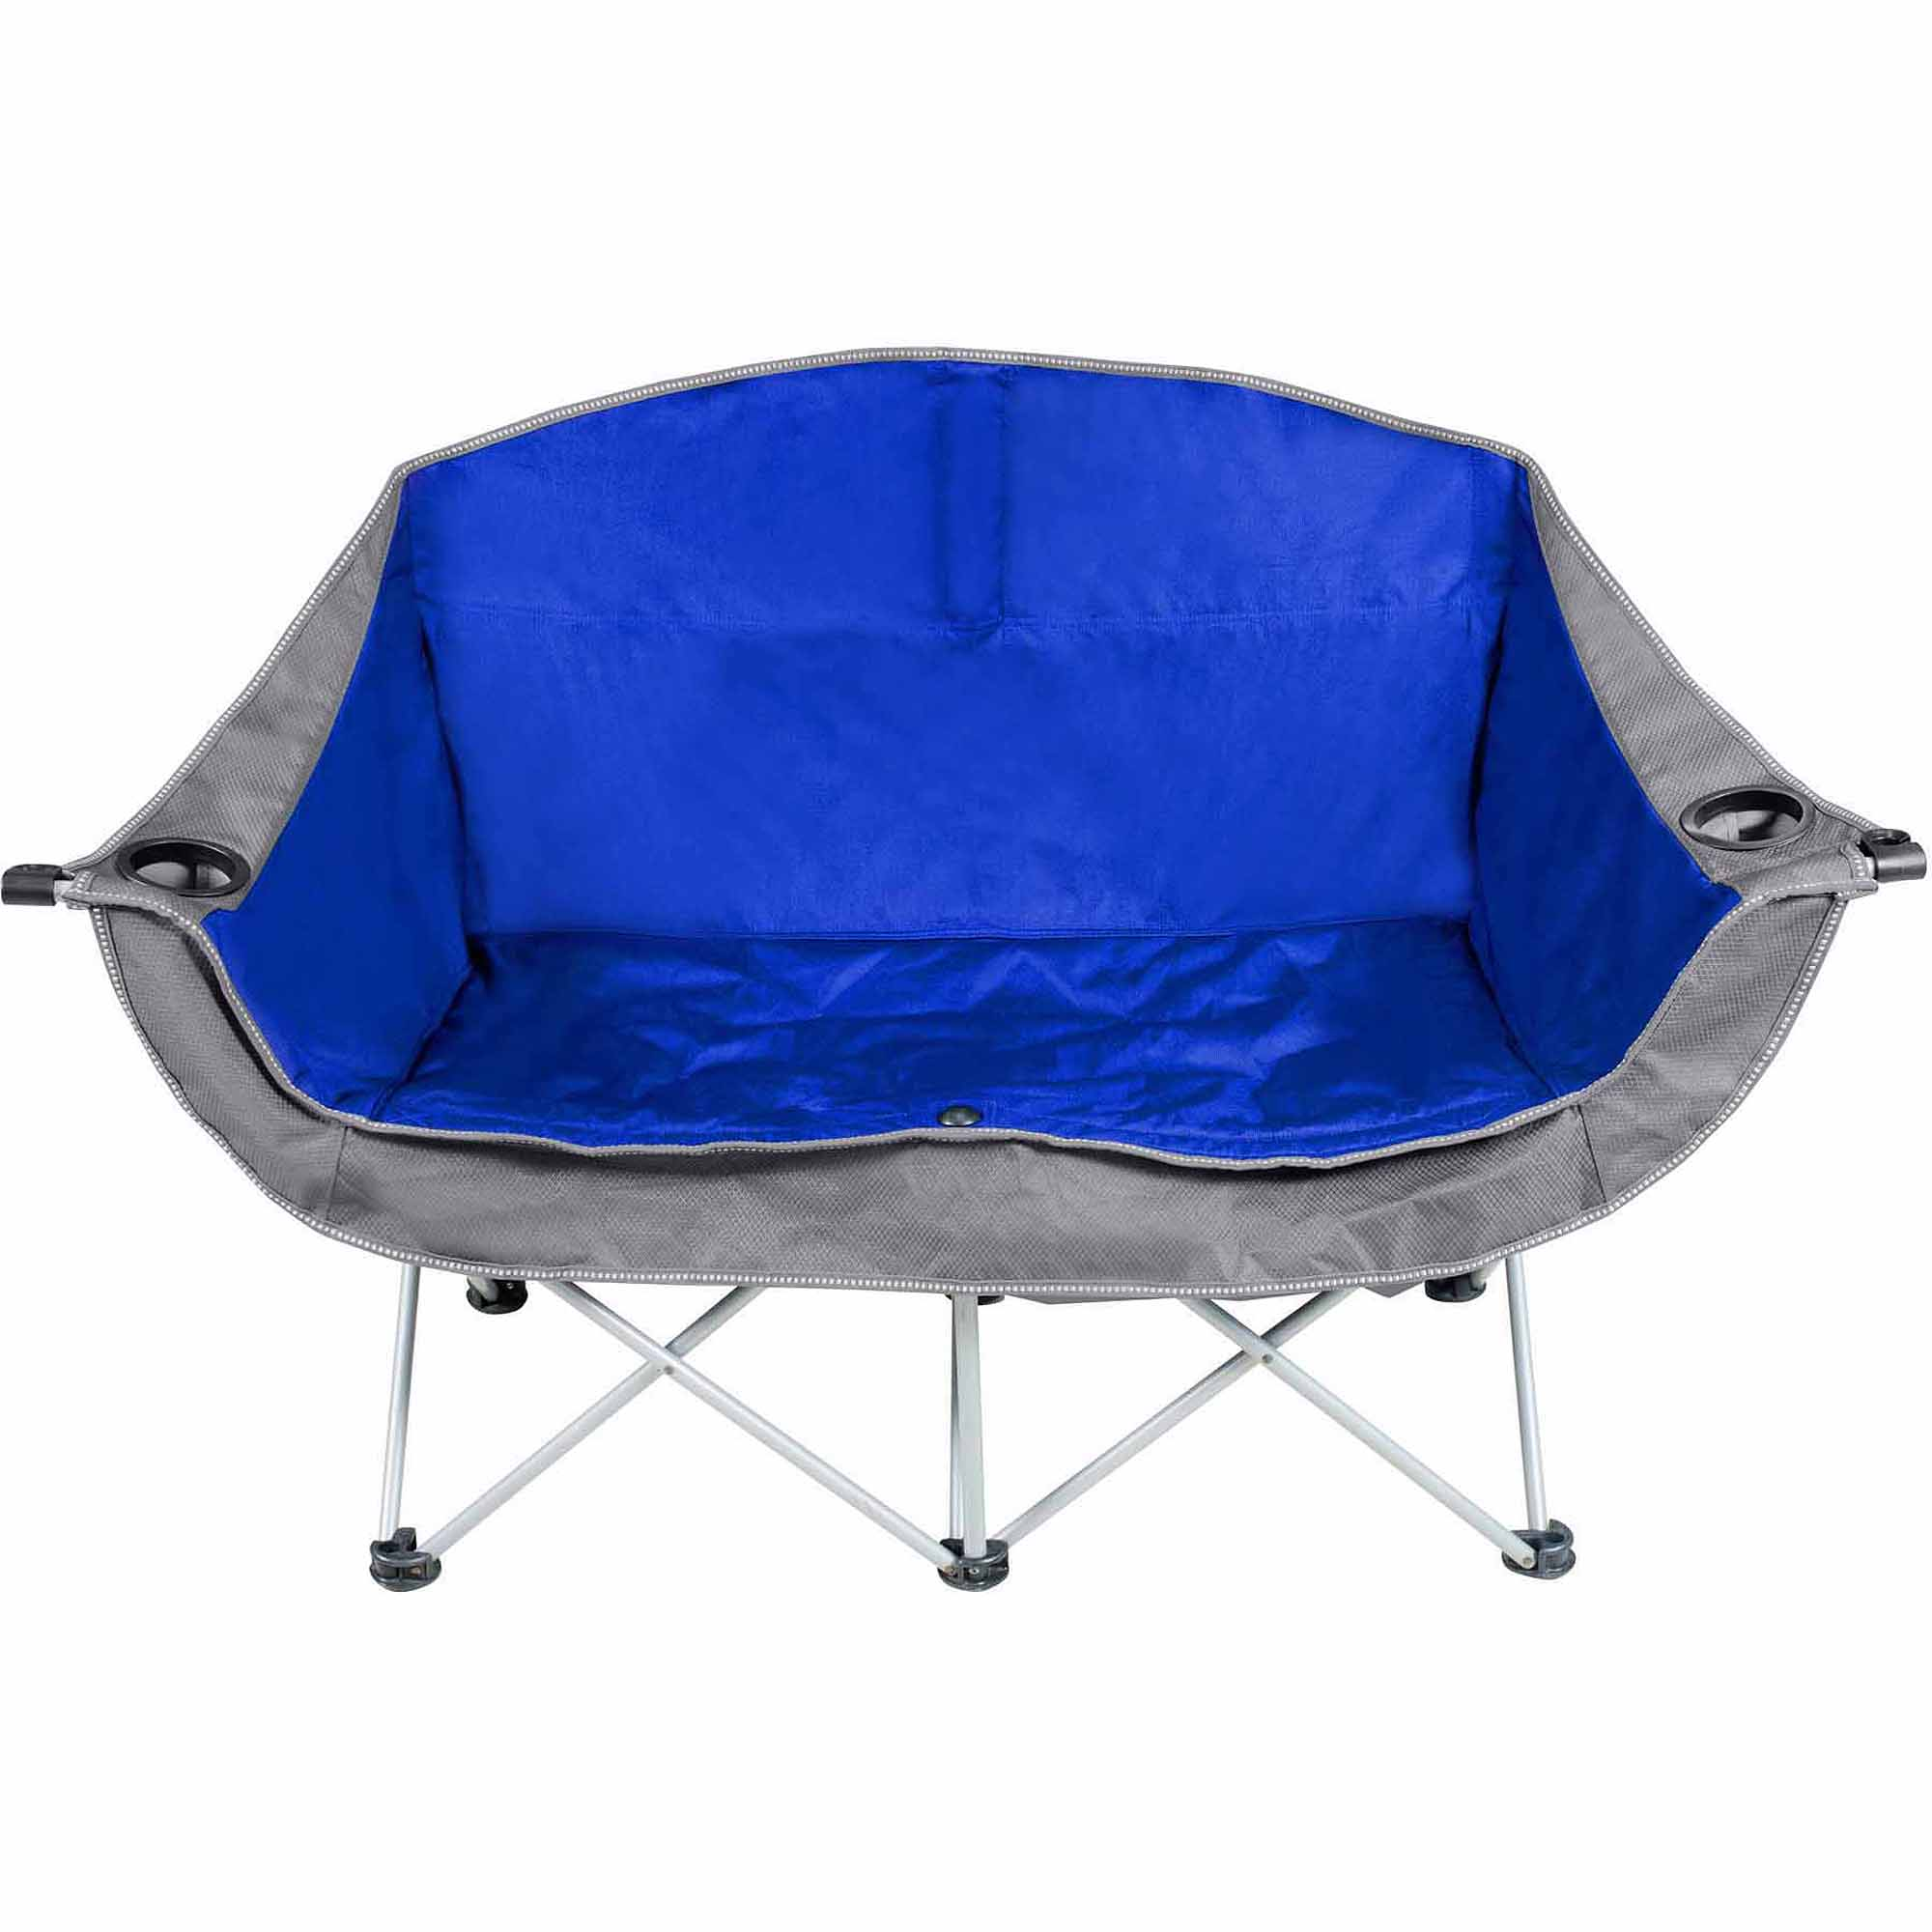 camp folding chairs hanging wicker egg chair with stand ozark trail 2 person camping love seat walmart com